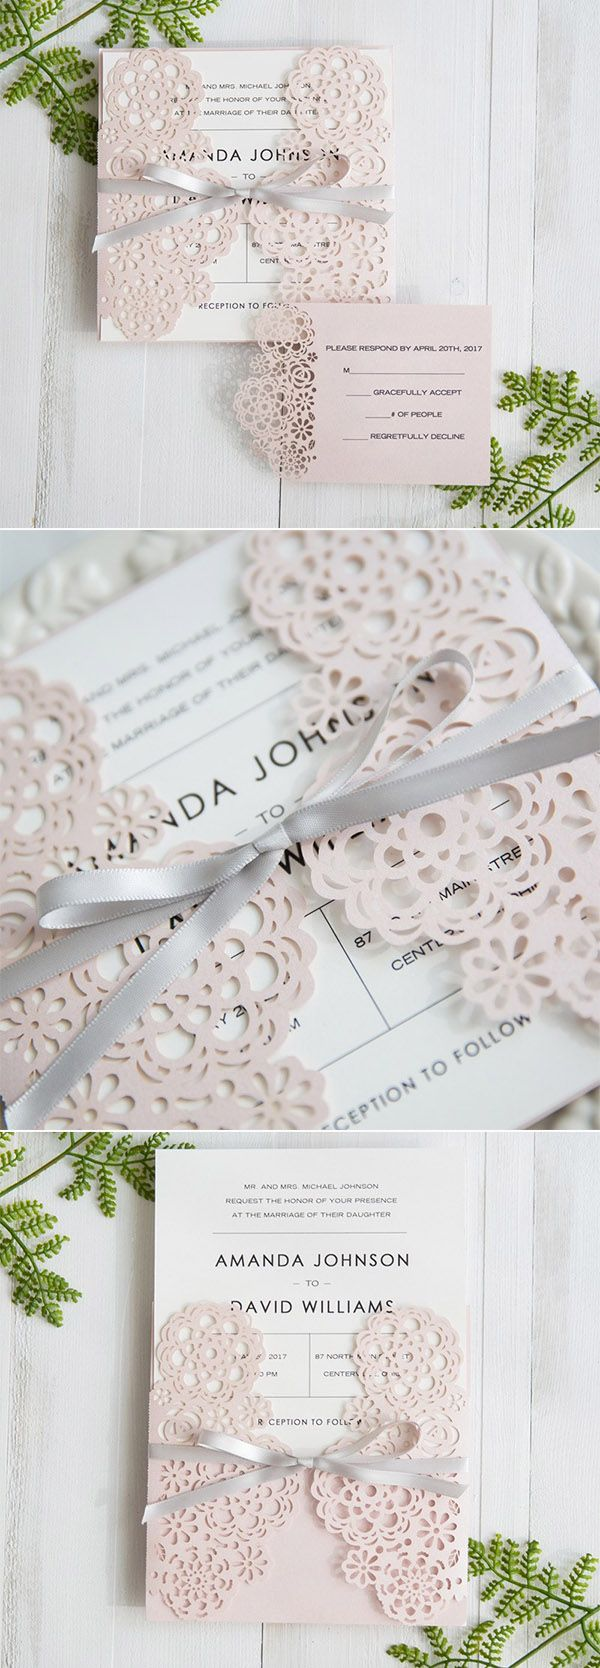 176 best Stylish Wedding Ideas images on Pinterest | Invitation ...